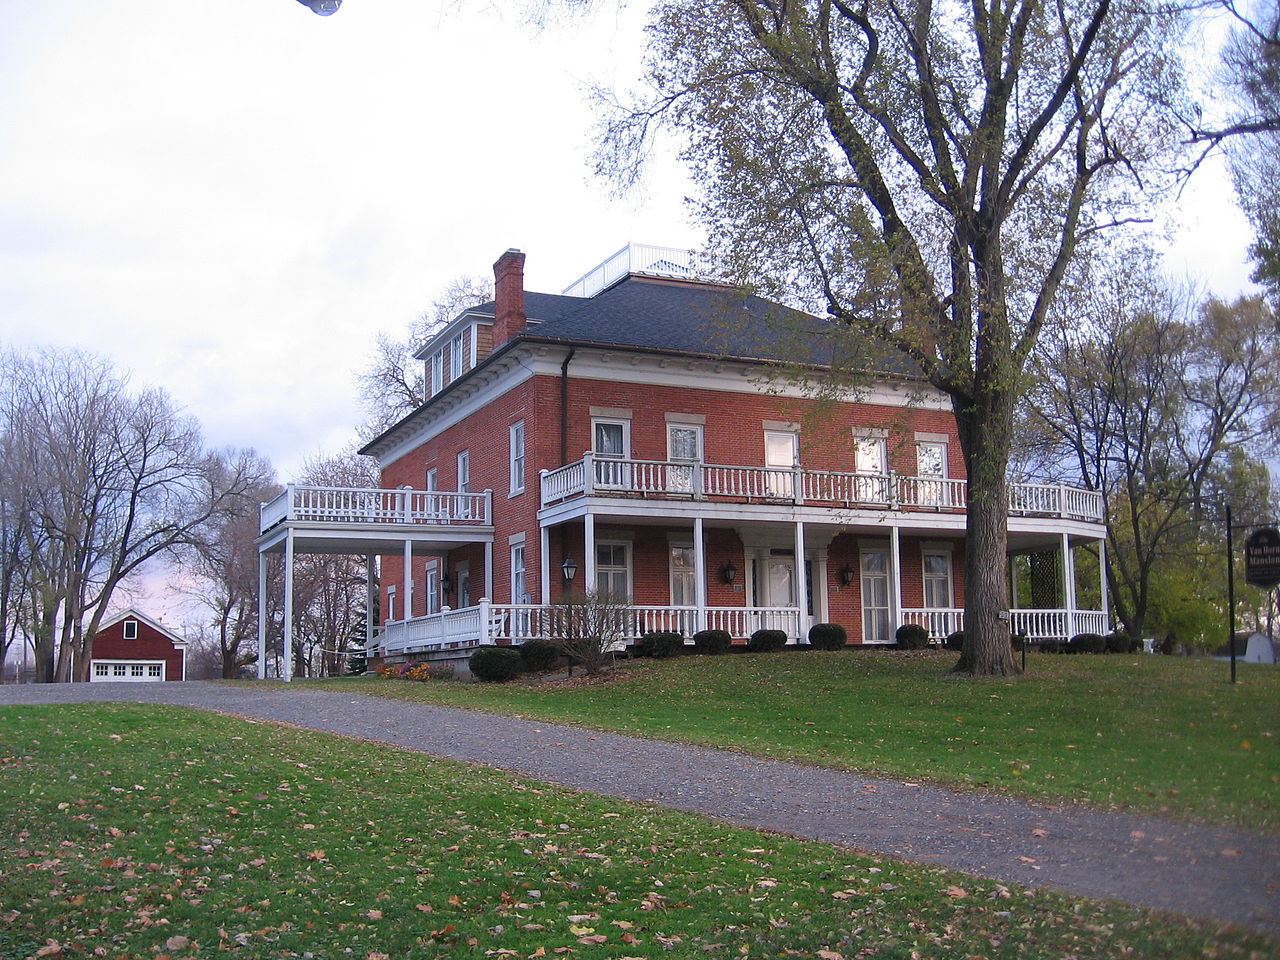 The Van Horn Mansion was built in 1823 and is one of the most important historic buildings in the county.